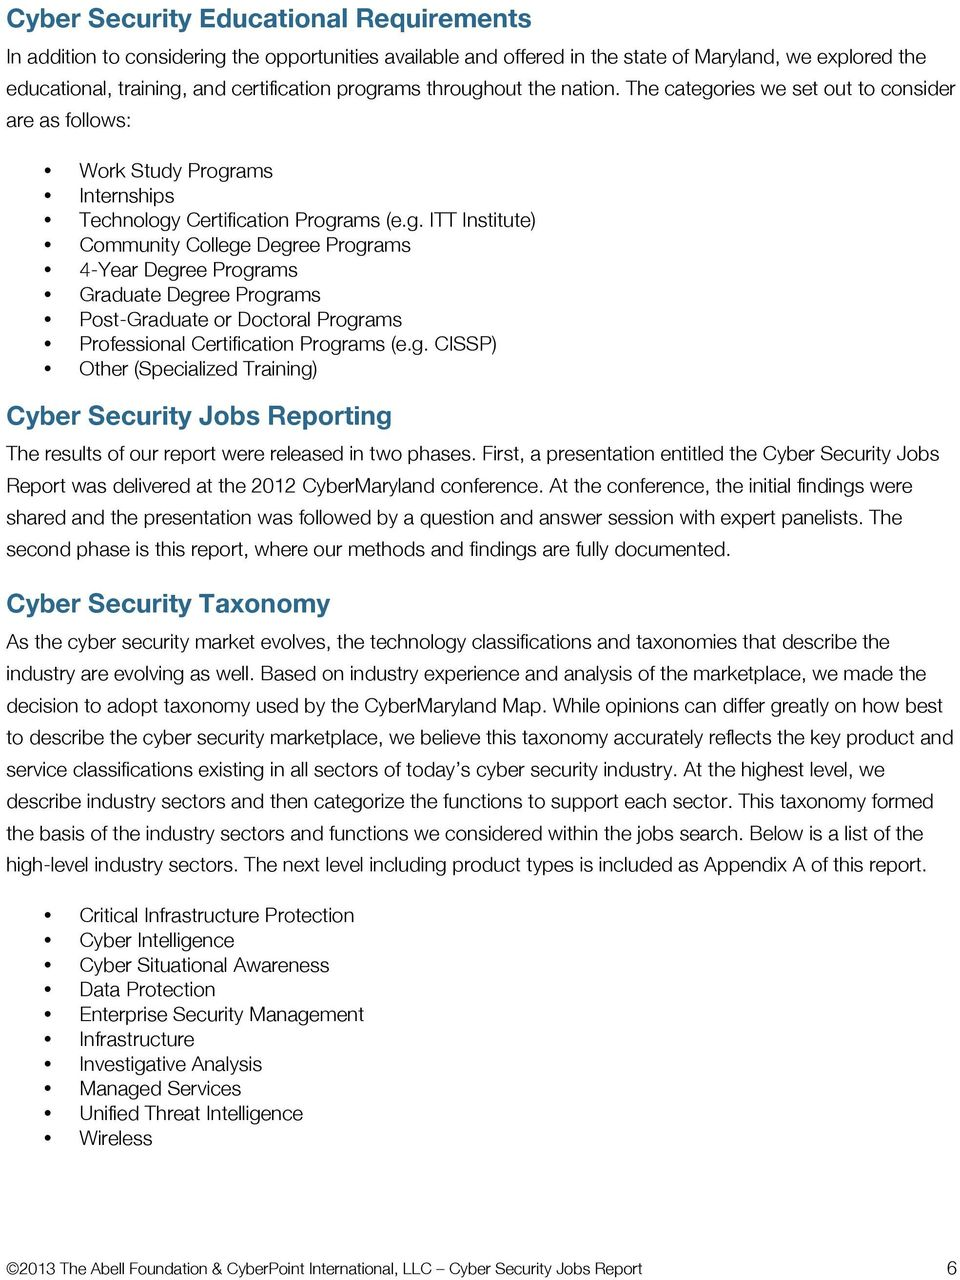 Cyber Security Jobs Report - PDF